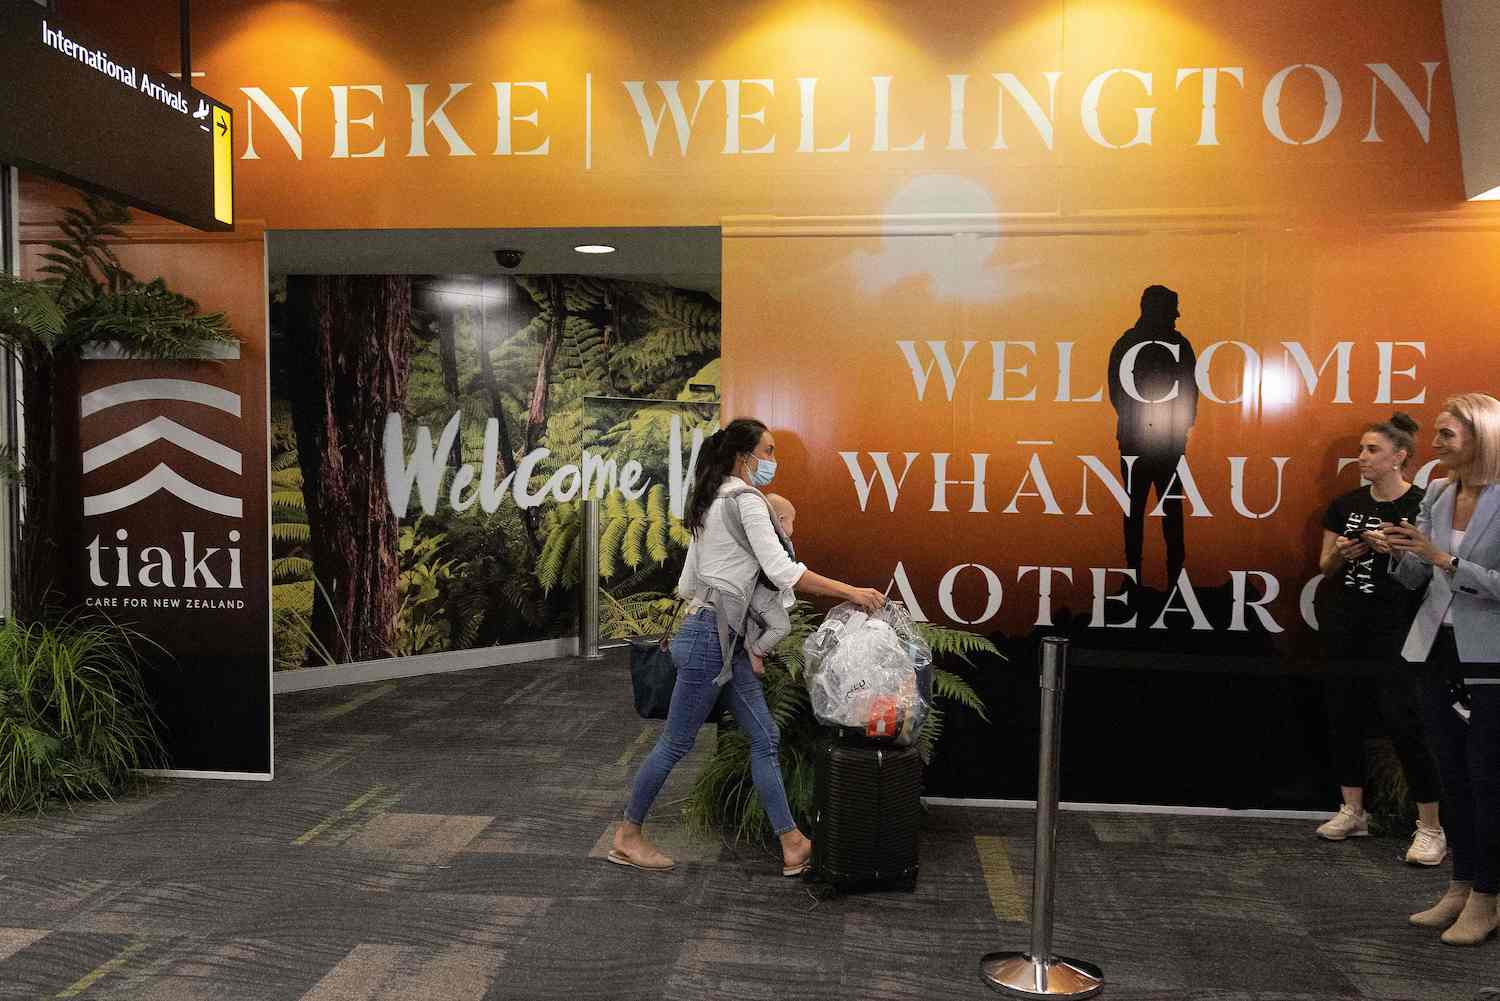 A traveller arrives in Wellington on the first flight from Sydney, after Australia and New Zealand opened their quarantine-free travel bubble on April 19. The arrangement was suspended on Saturday. (AFP File Photo)